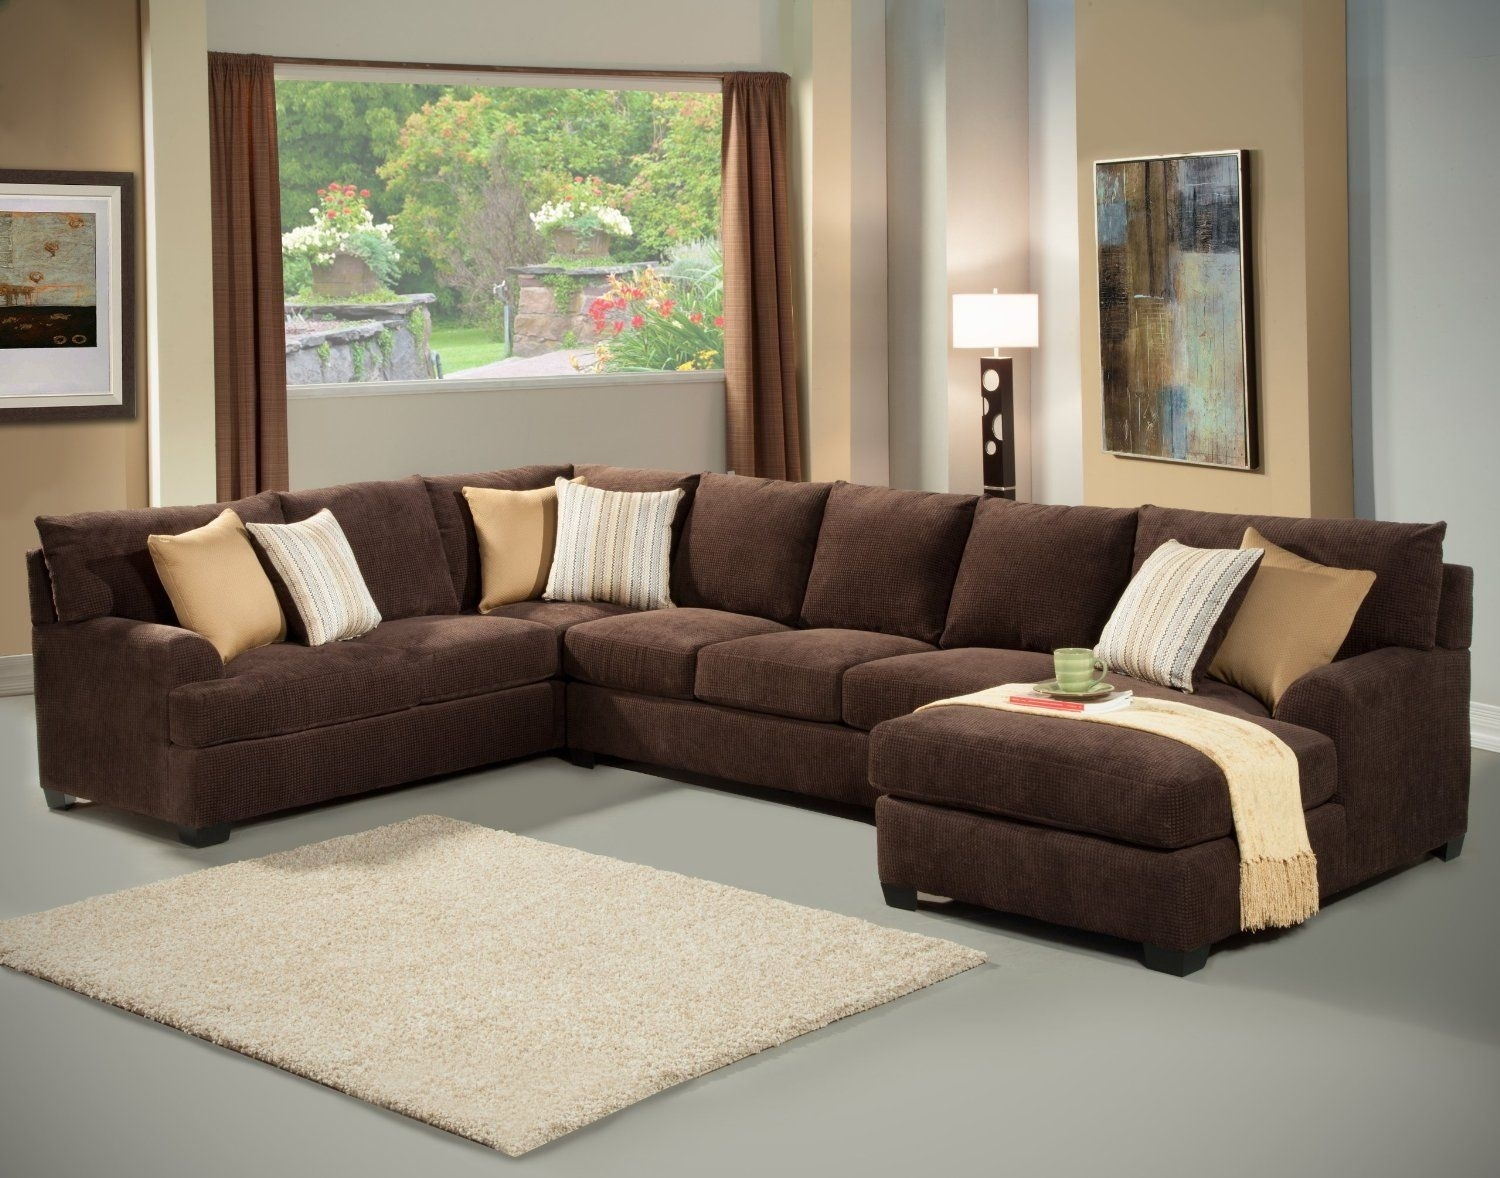 Amazon – Furniture Of America Navelis 3 Piece Micro Denier Intended For Sectional Sofas At Amazon (View 1 of 15)